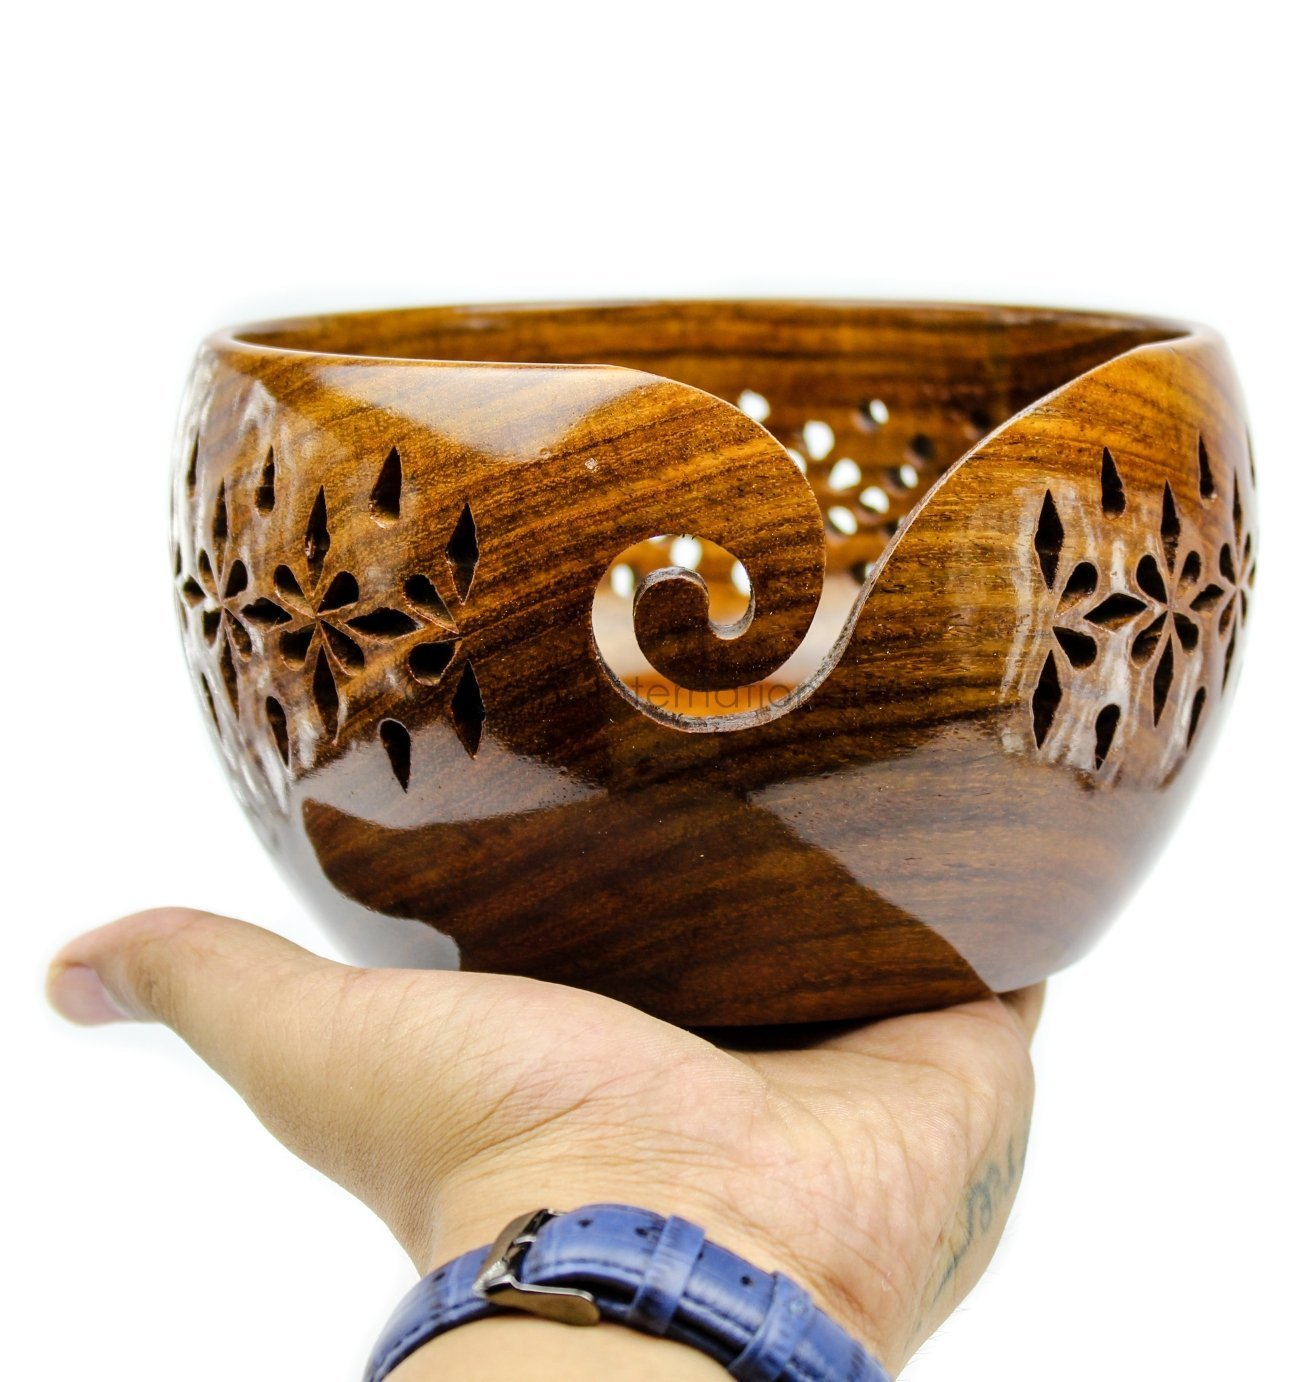 HANDMADE VINTAGE ART Rosewood Crafted Wooden Yarn Storage Bowl With Carved Holes & Drills | Knitting Crochet Accessories